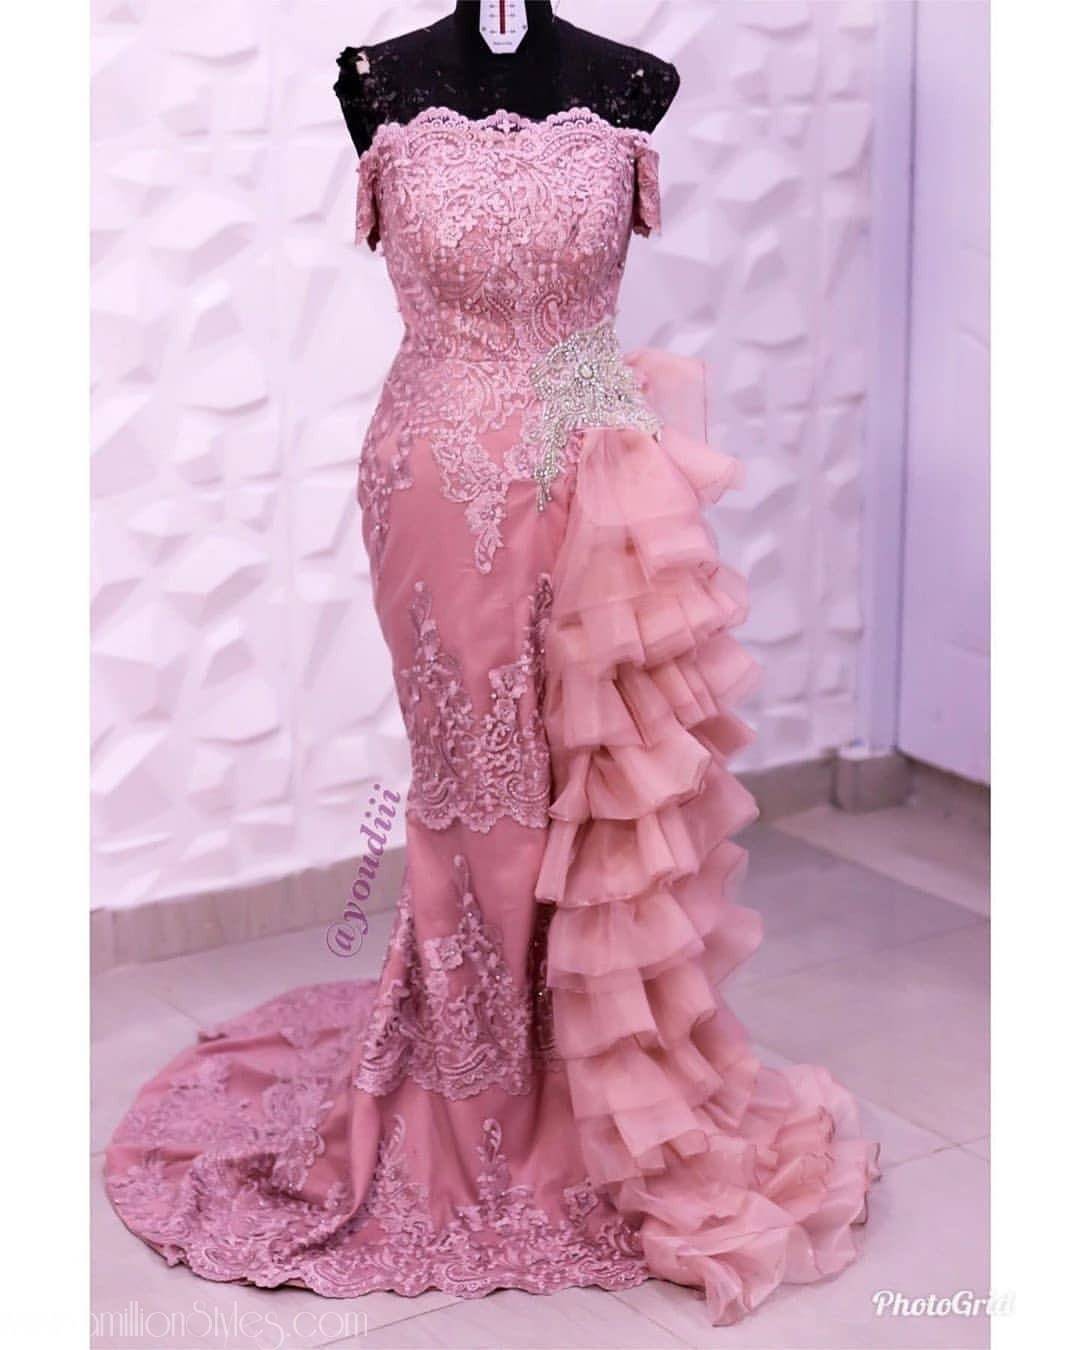 2020 Asoebi Trends: Asoebi Styles With Side Ruffles